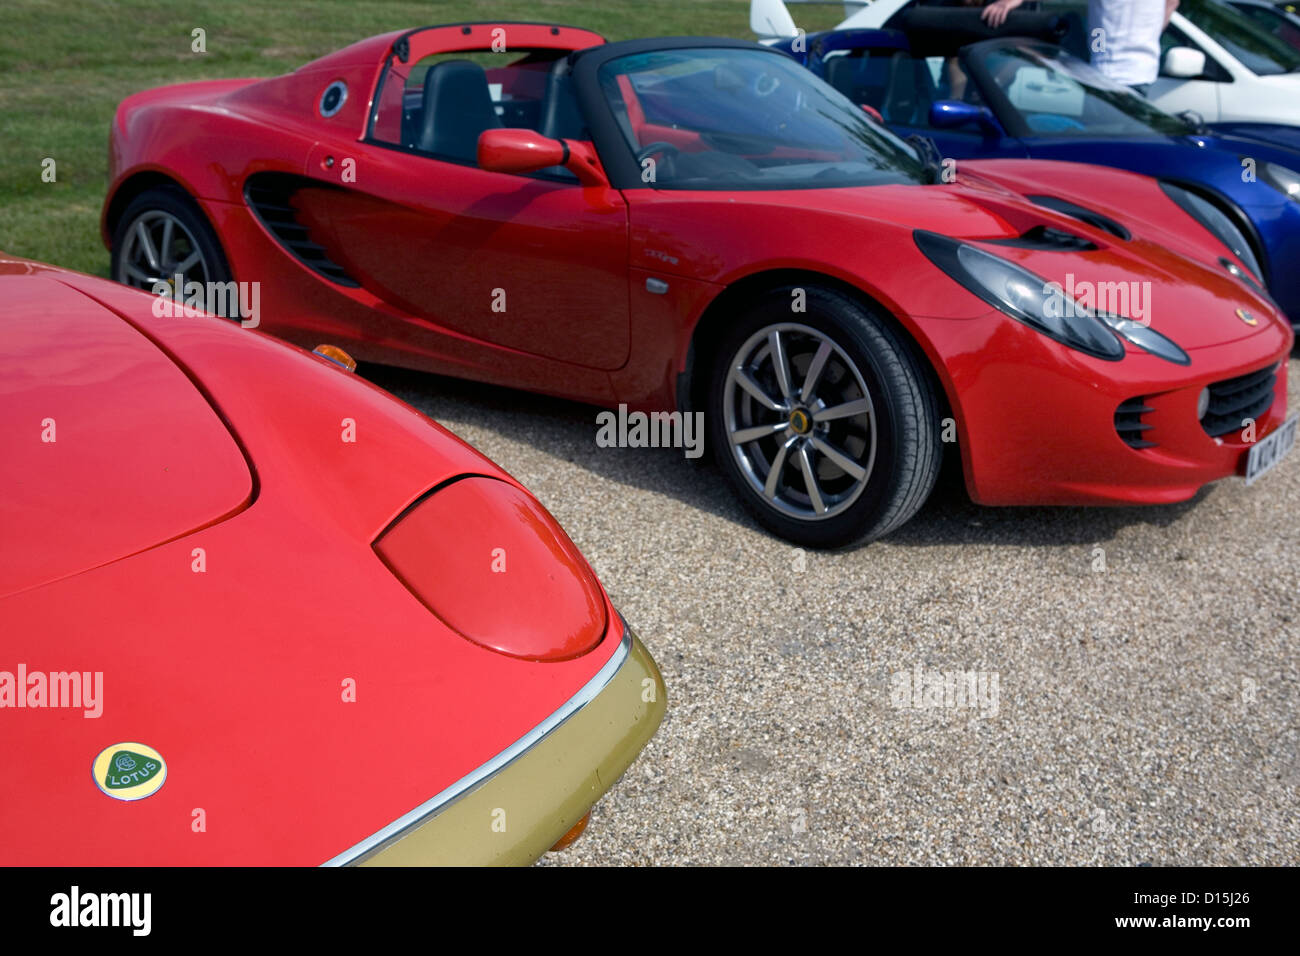 A row of modern and old Lotus cars parked on gravel at a car show ...